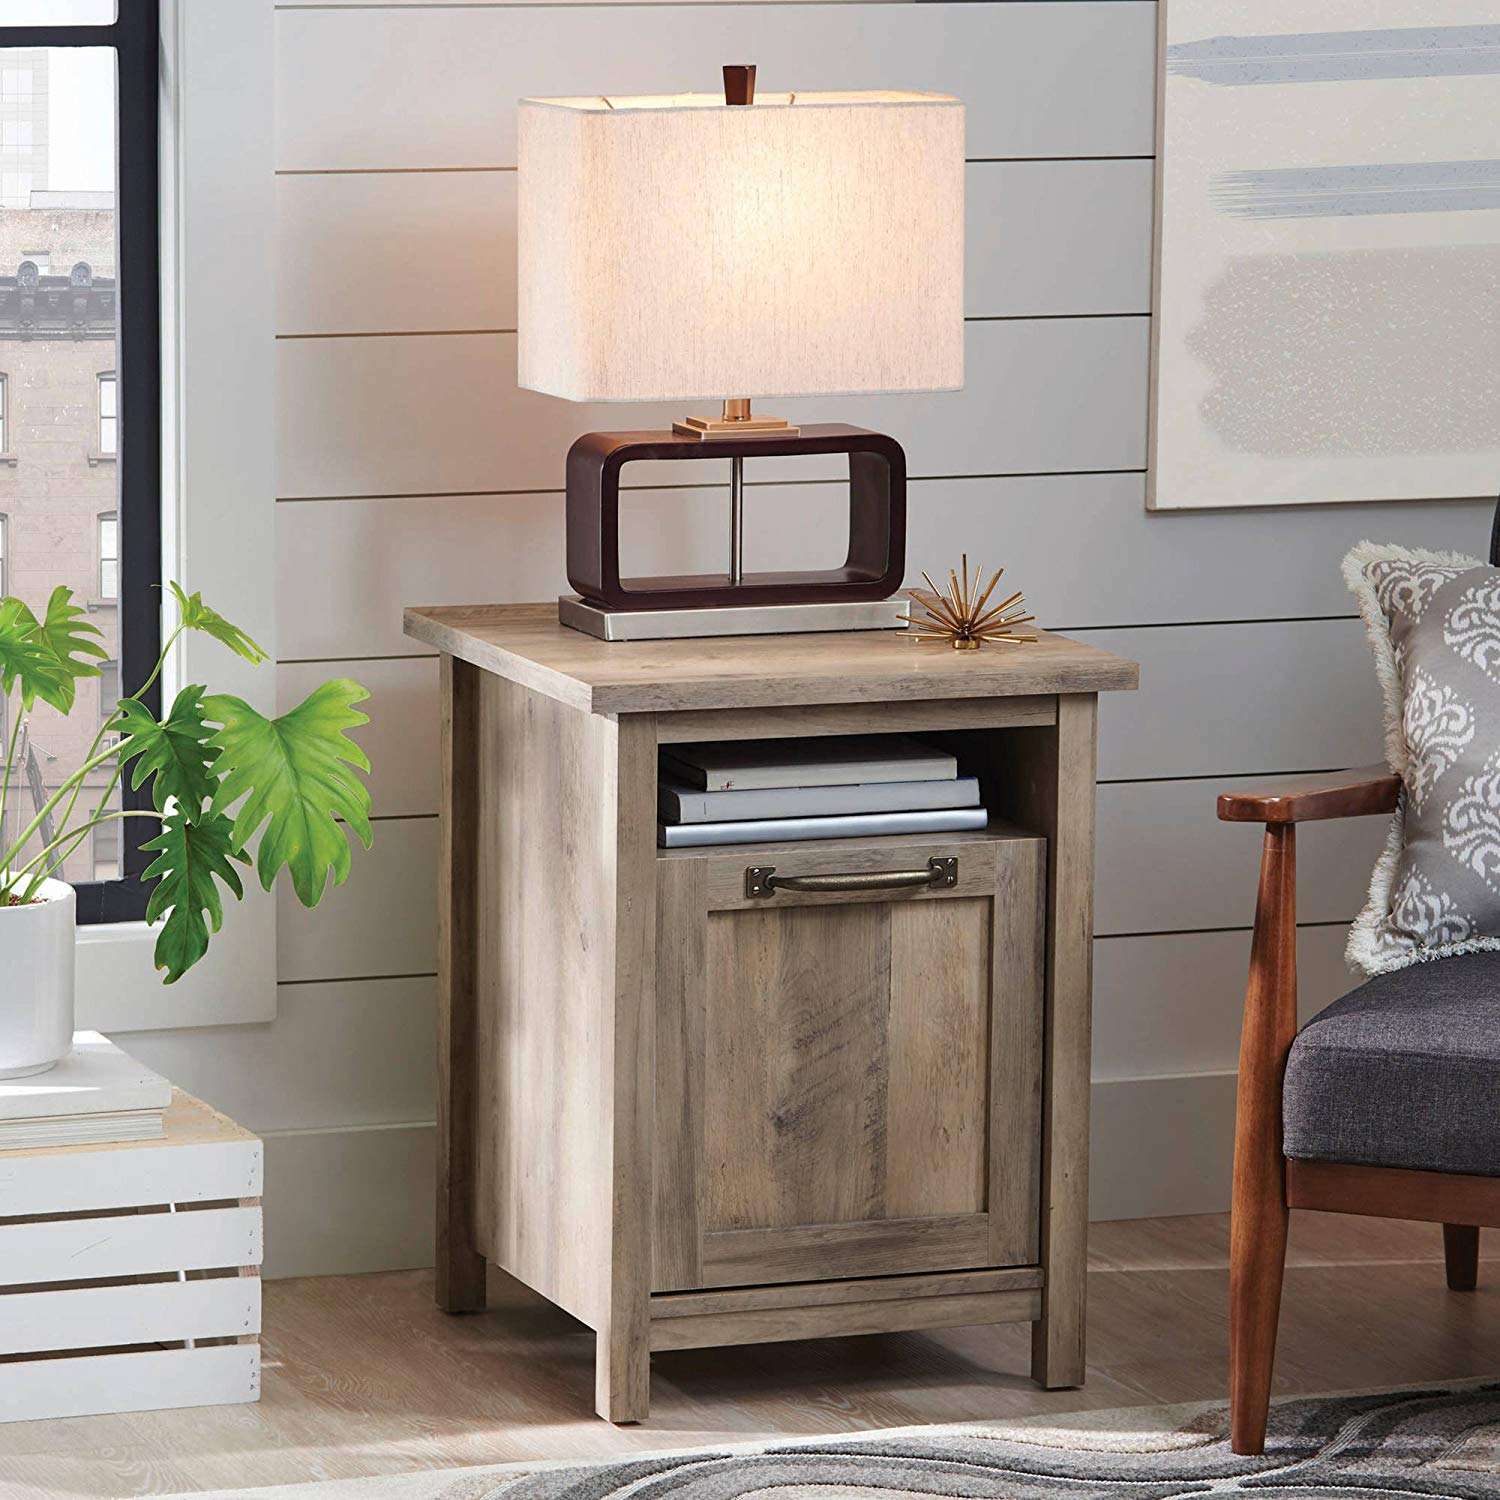 better homes and gardens modern farmhouse side table accent decor nightstands rustic gray finish health personal care outside patio bar antique coffee end tables office furniture